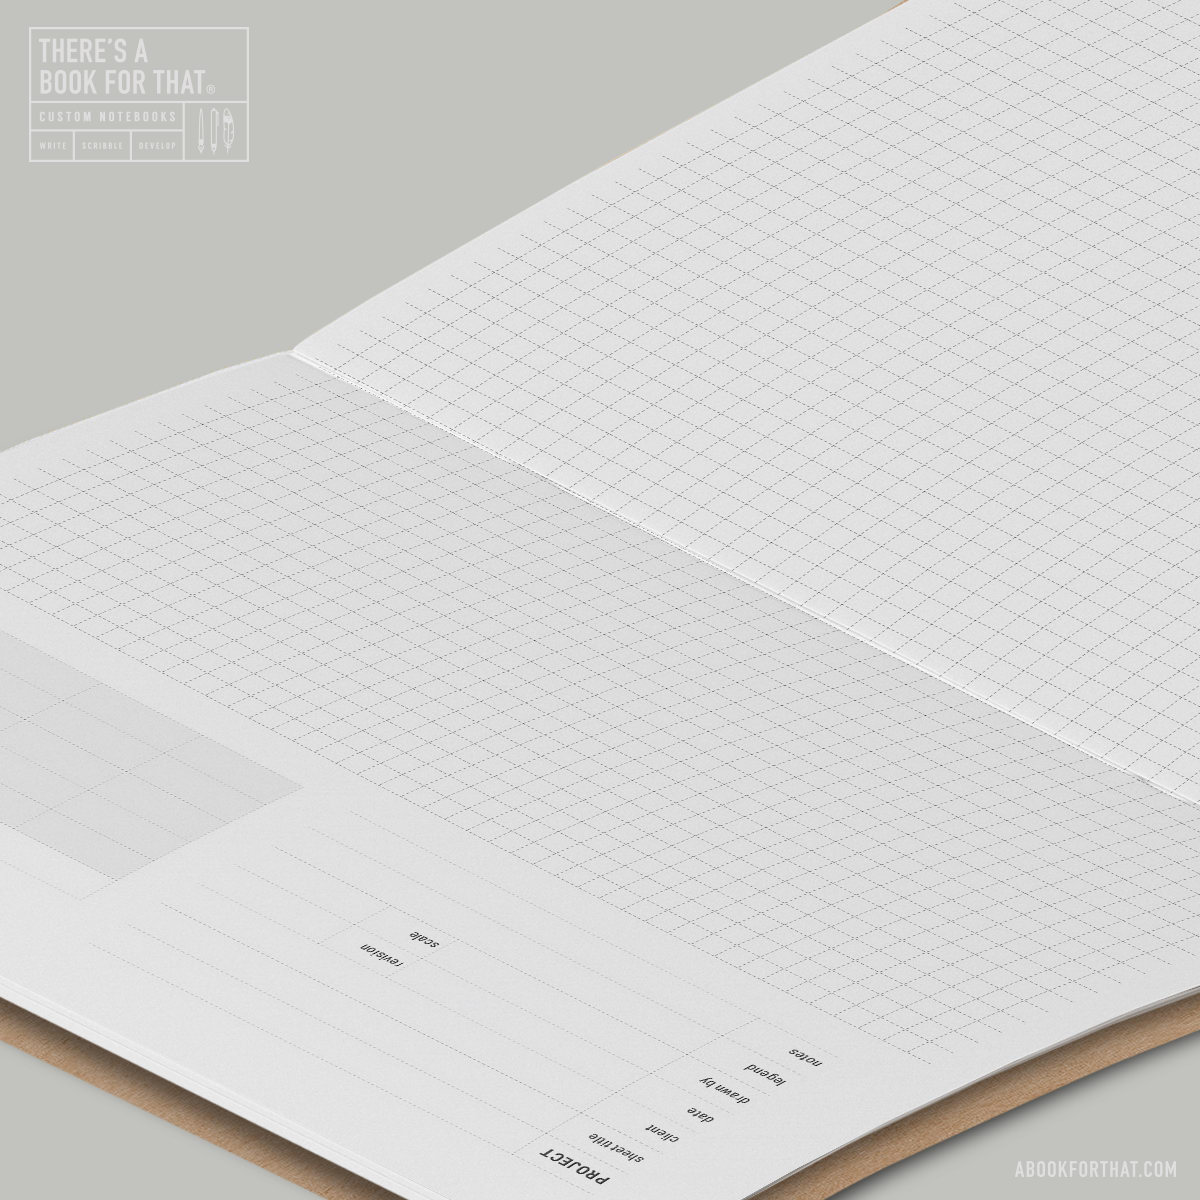 B-109_Architects_Stationery_Notebook_Details